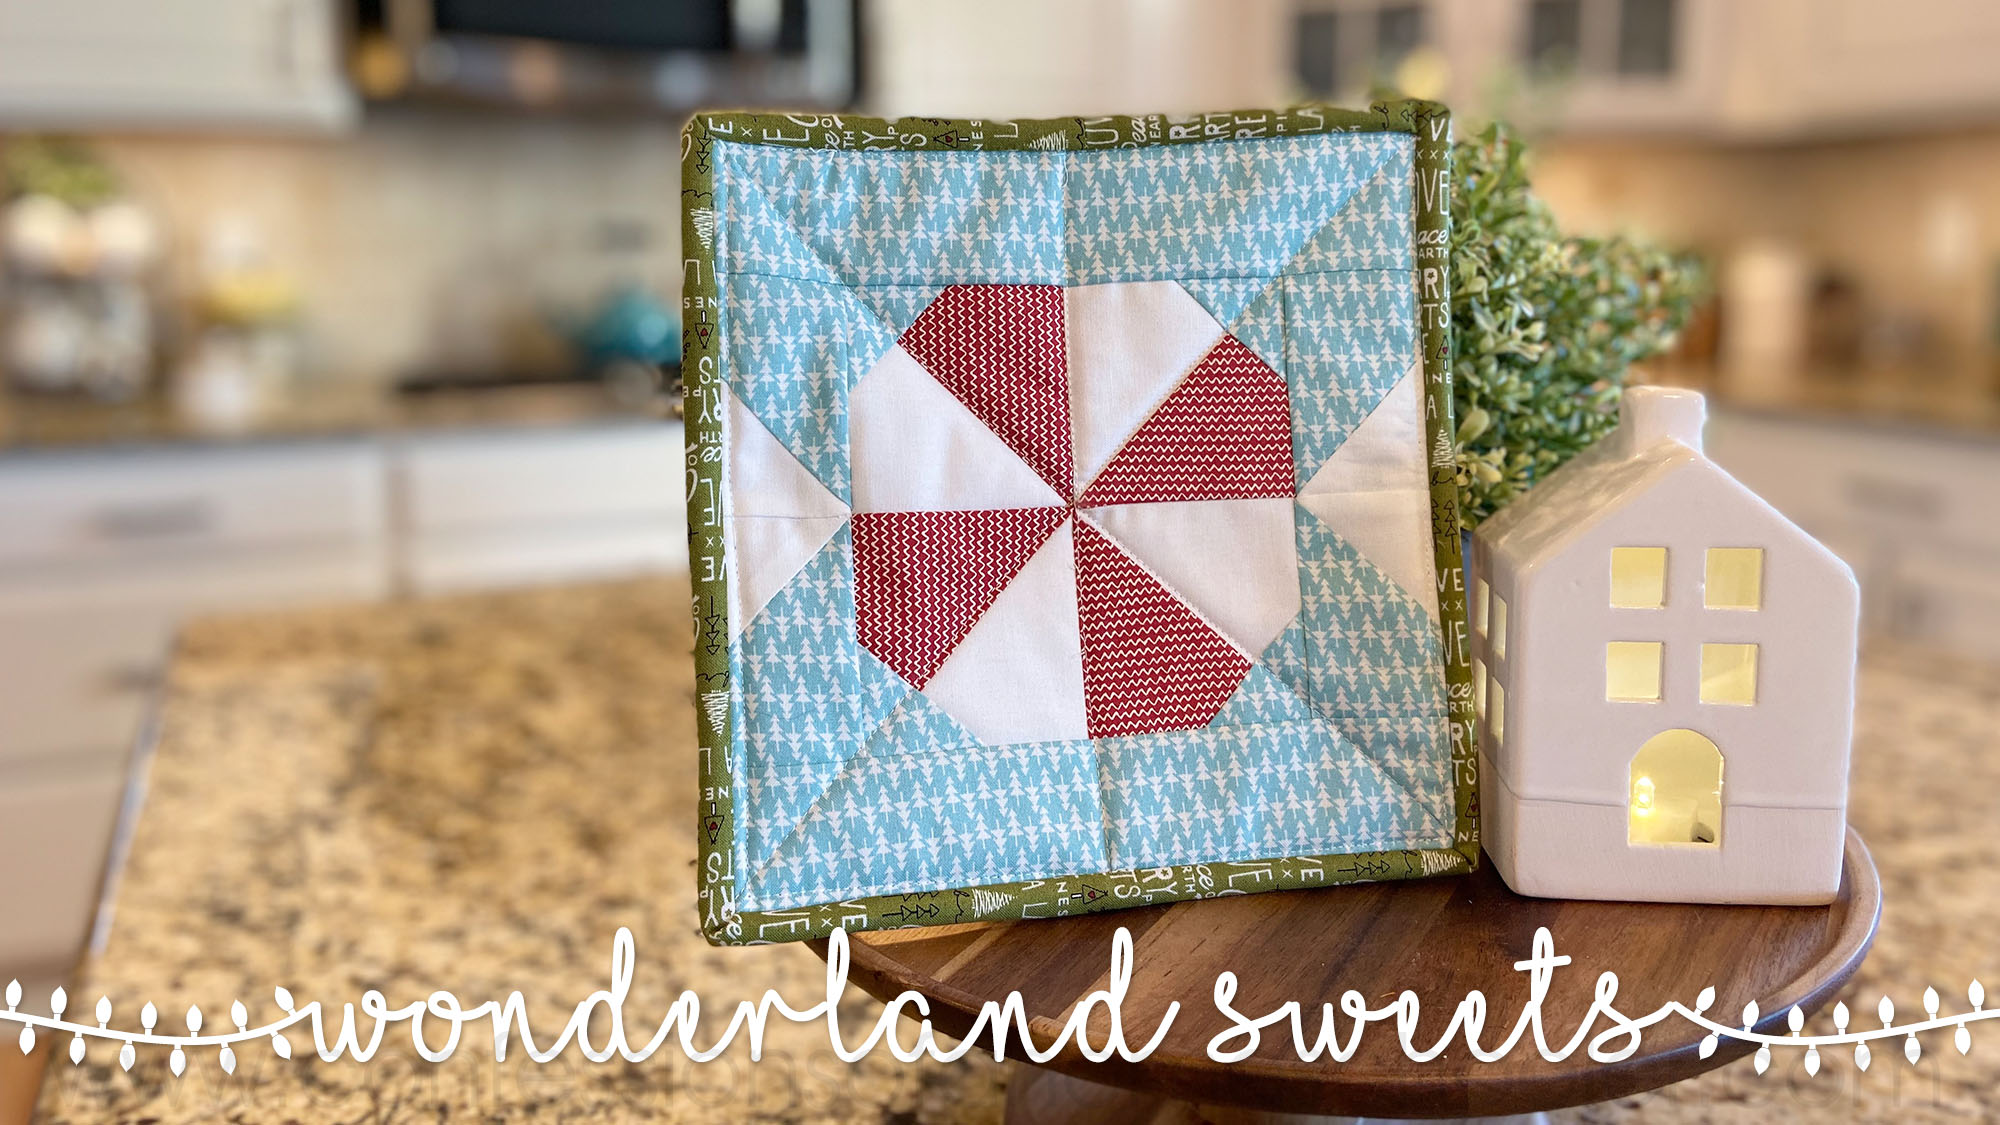 Wonderland Sweets Pot Holder Pattern